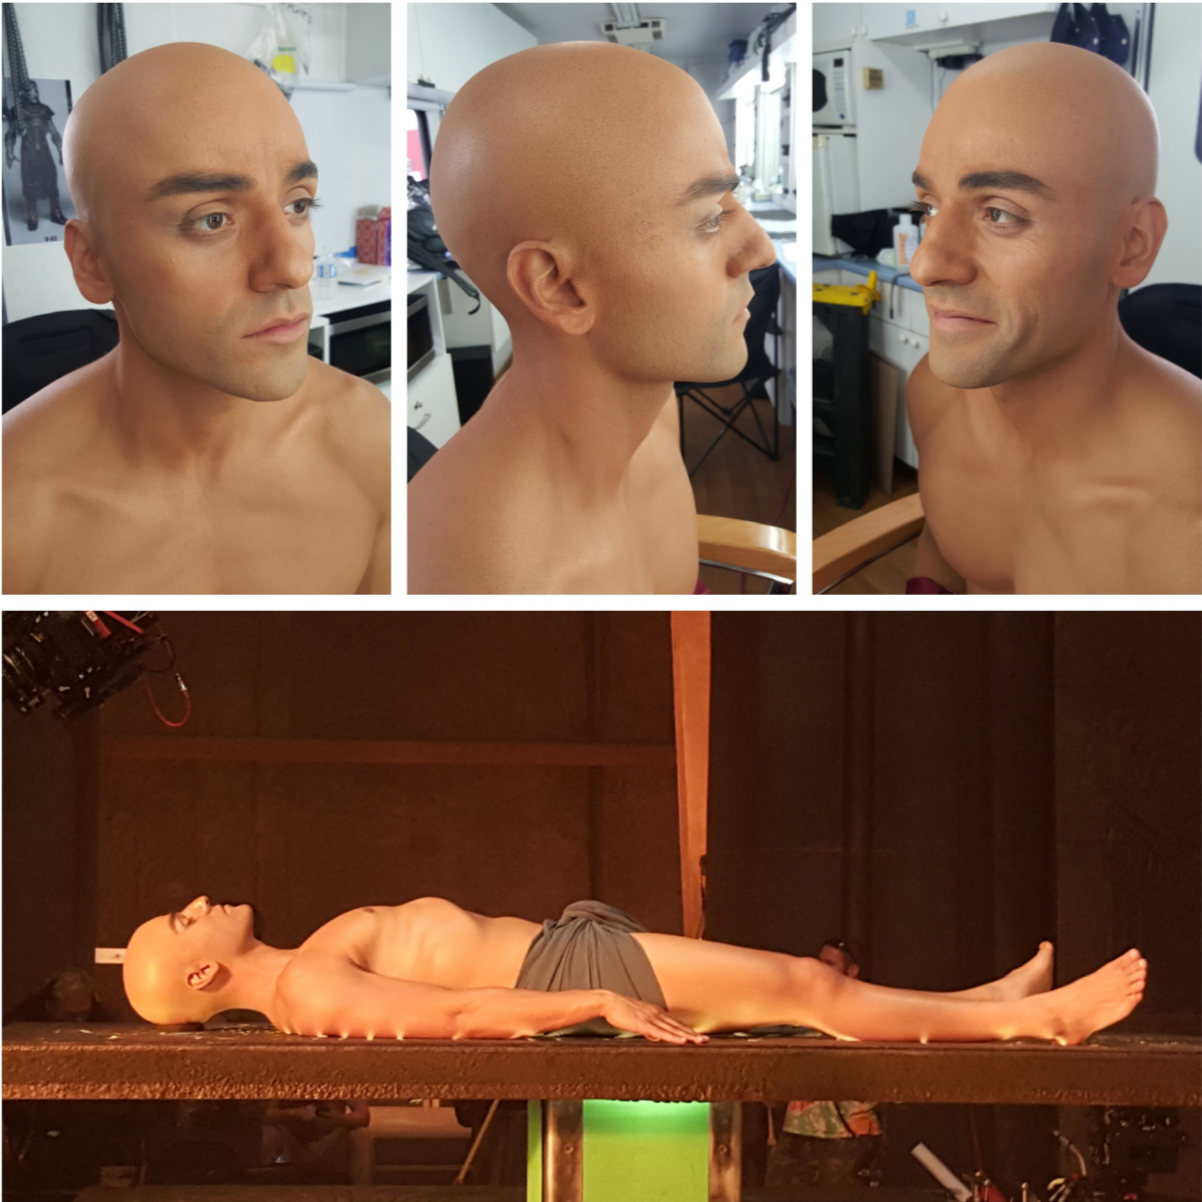 Here is another makeup that we did in Montreal for XMen - Apocalypse. I gotta say... I'm pretty proud of this one. In the film, we are meant to see Egyptian Oscar before his is transformed into Apocalypse.  Alexei Dmitriew @hookuptattoos, and I did the initial test, figuring out the best path to choose to make Oscar look realistically bald. If you have seen his movies or seen images of Oscar, you know he has a lot of dense curly hair. And due to obligations for a film right after XMen, he couldn't shave his head. Luckily, for the Apocalypse makeup we already had to keep his hair pretty 'high and tight'. I was able to convince him to shave up some of his nape so that we could anchor the bald cap in a non moving area. Ok.. Yes... A bit of a cheat... But look at the results. Believe me.. A bald cap is one of the toughest things to pull off on a set, have it be successful and last all day. So many things to go wrong and so many ways for the makeup to break.  For the shoot day, Mike Ornelaz @mikeornelaz, and I did the bald cap. He was in it for about 8 to 9 hours, and it held up great.  On a side note, the scene was massive and HOD Rita Ciccozzi, her Key, Rosalina DaSilva @rosalinamakeup, and their team had a ton of people to make up that day too. Kudos!!!!